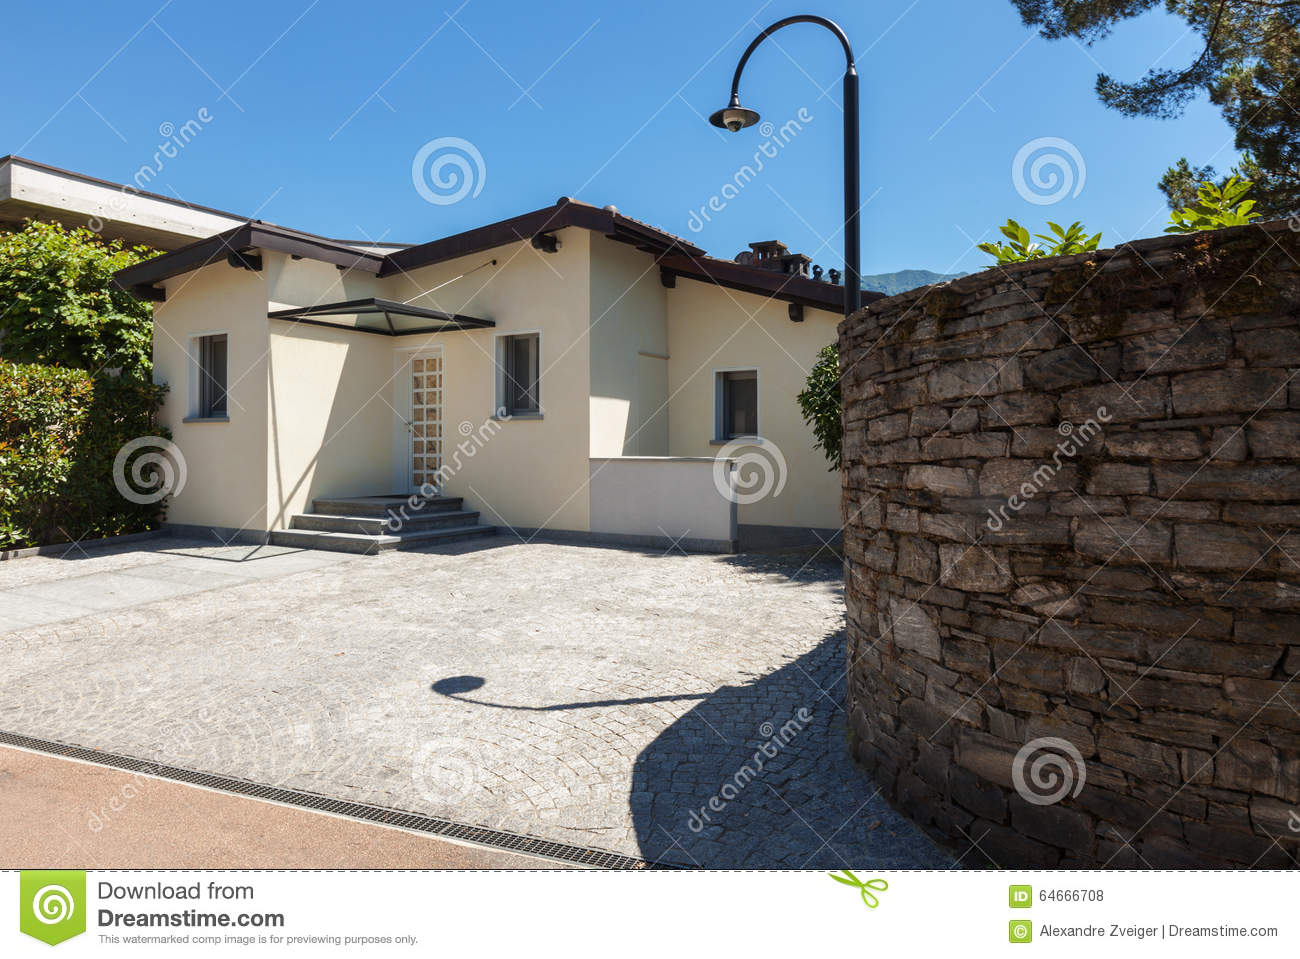 Modern House, View From he ntrance On he oad Stock Photo ... - ^